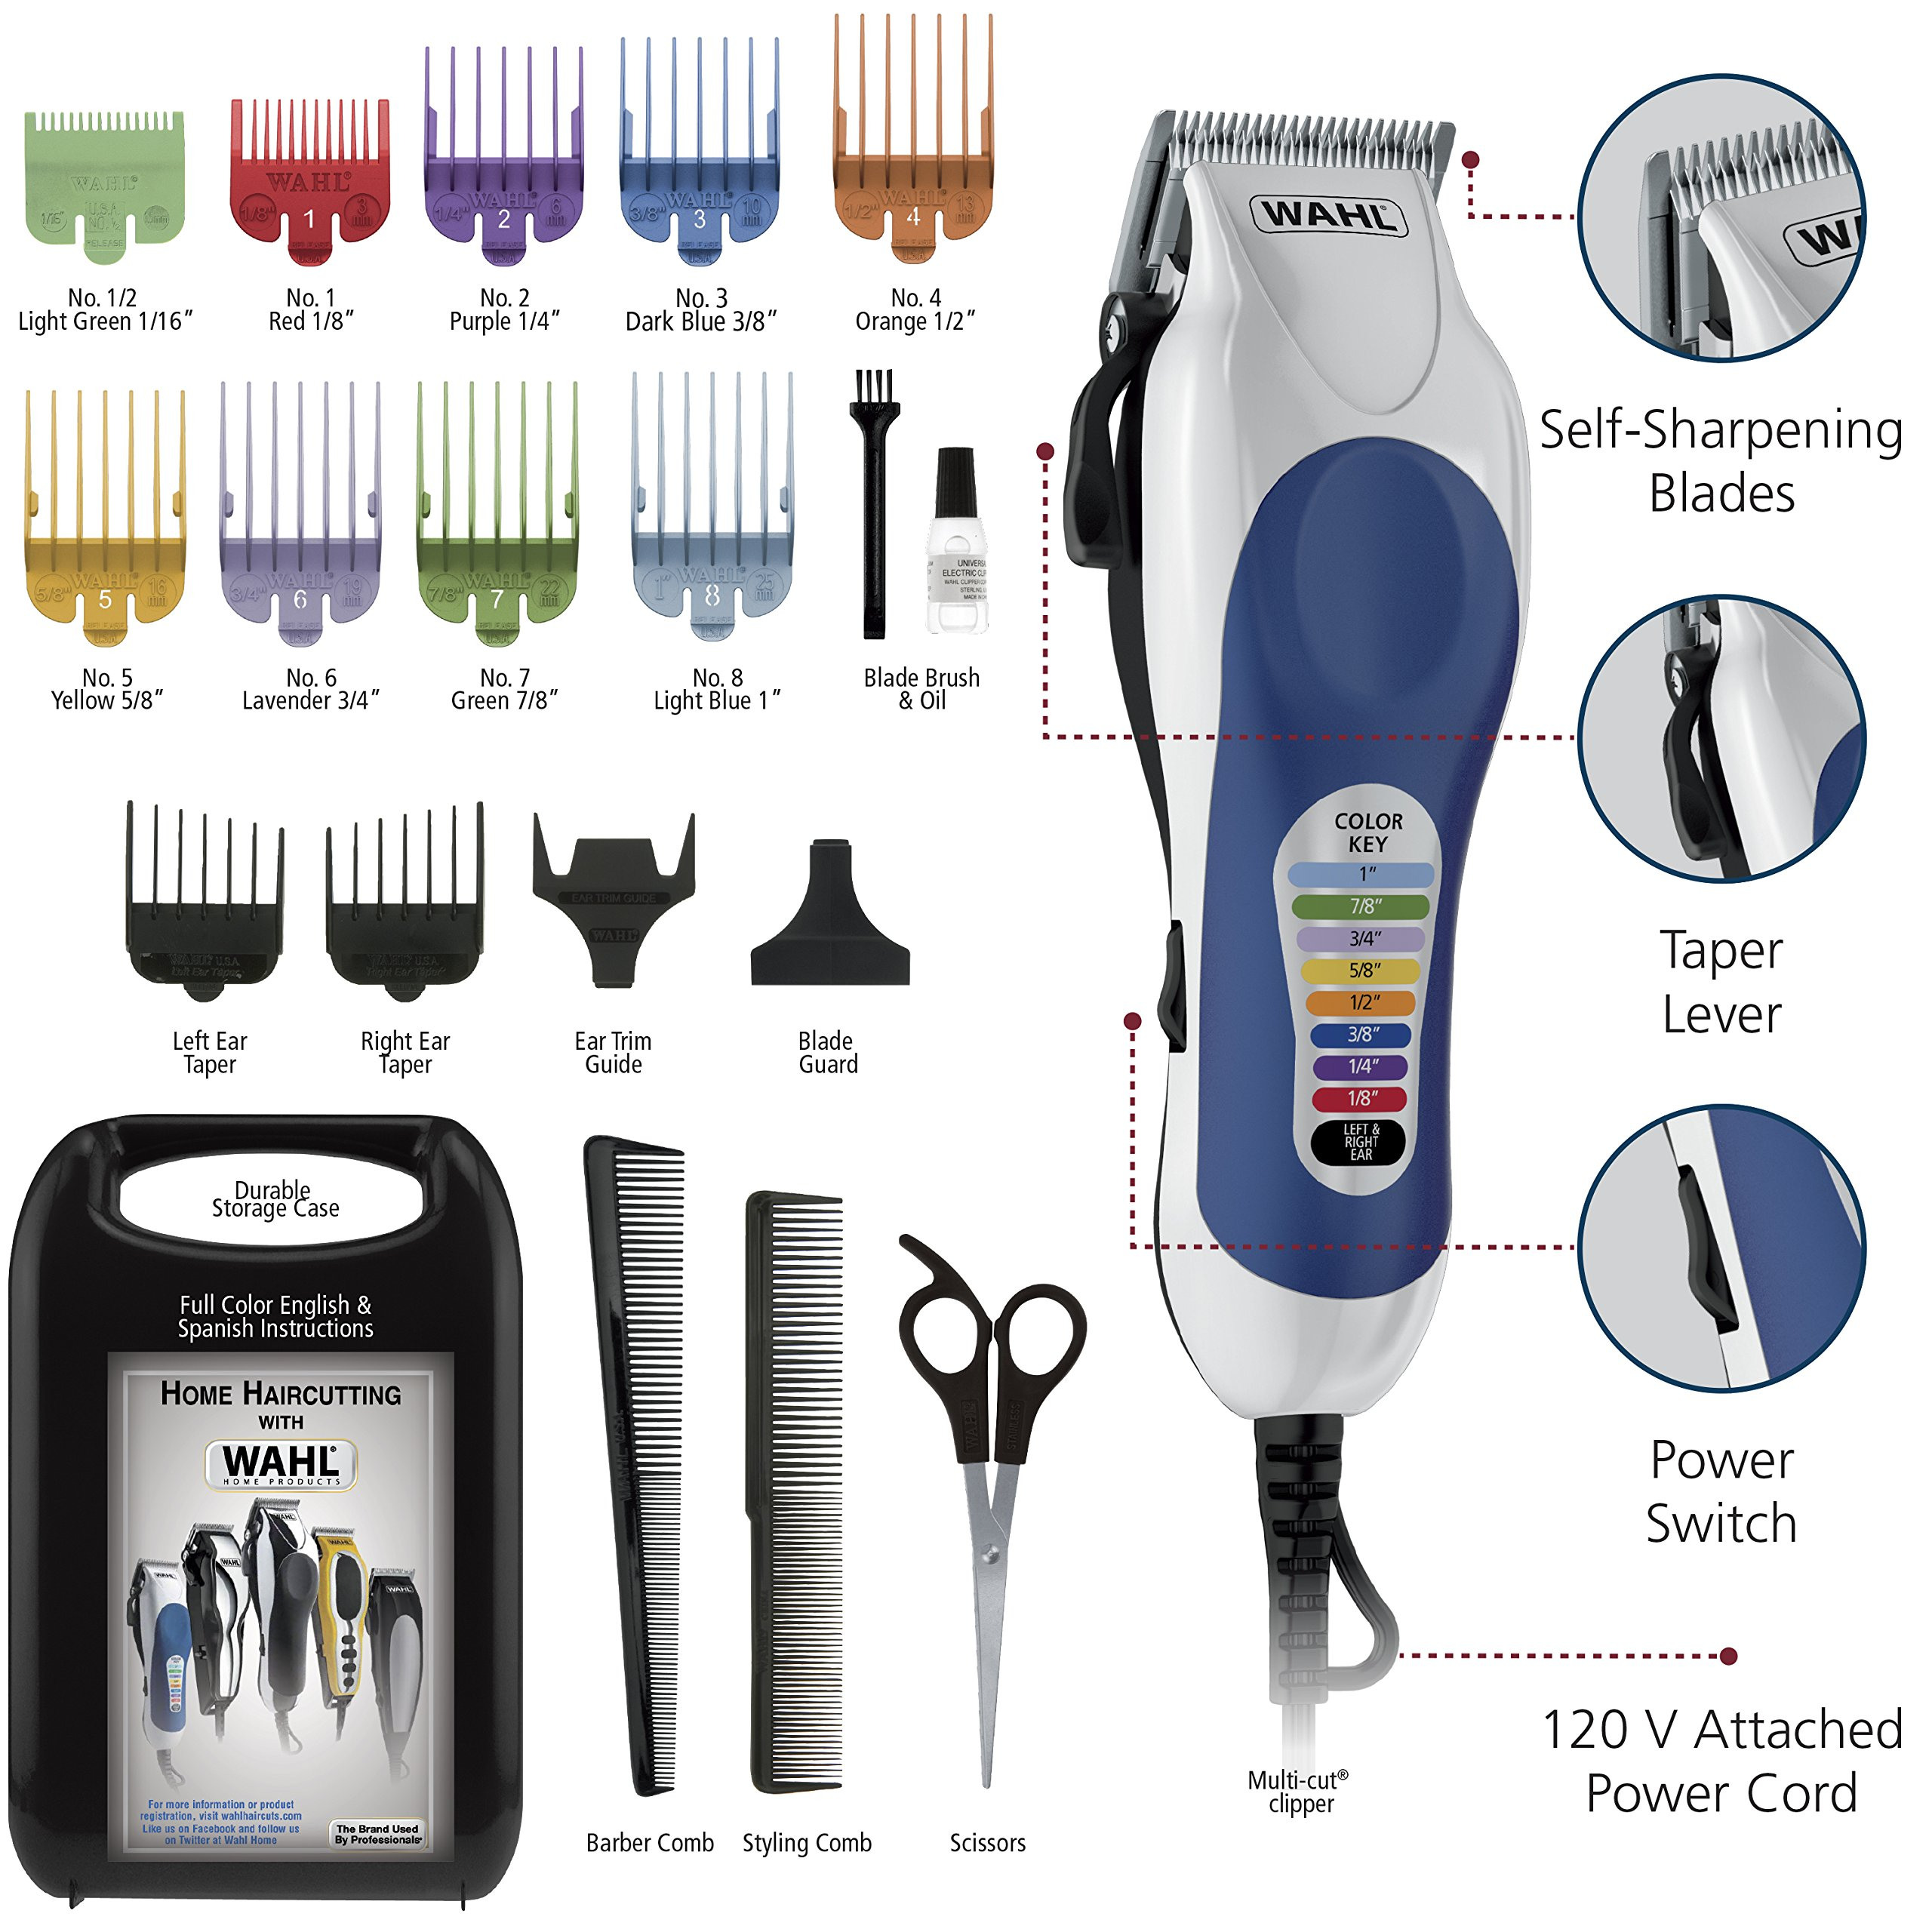 Wahl Color Pro Complete Hair Cutting Kit, #79300-400T by WAHL (Image #5)